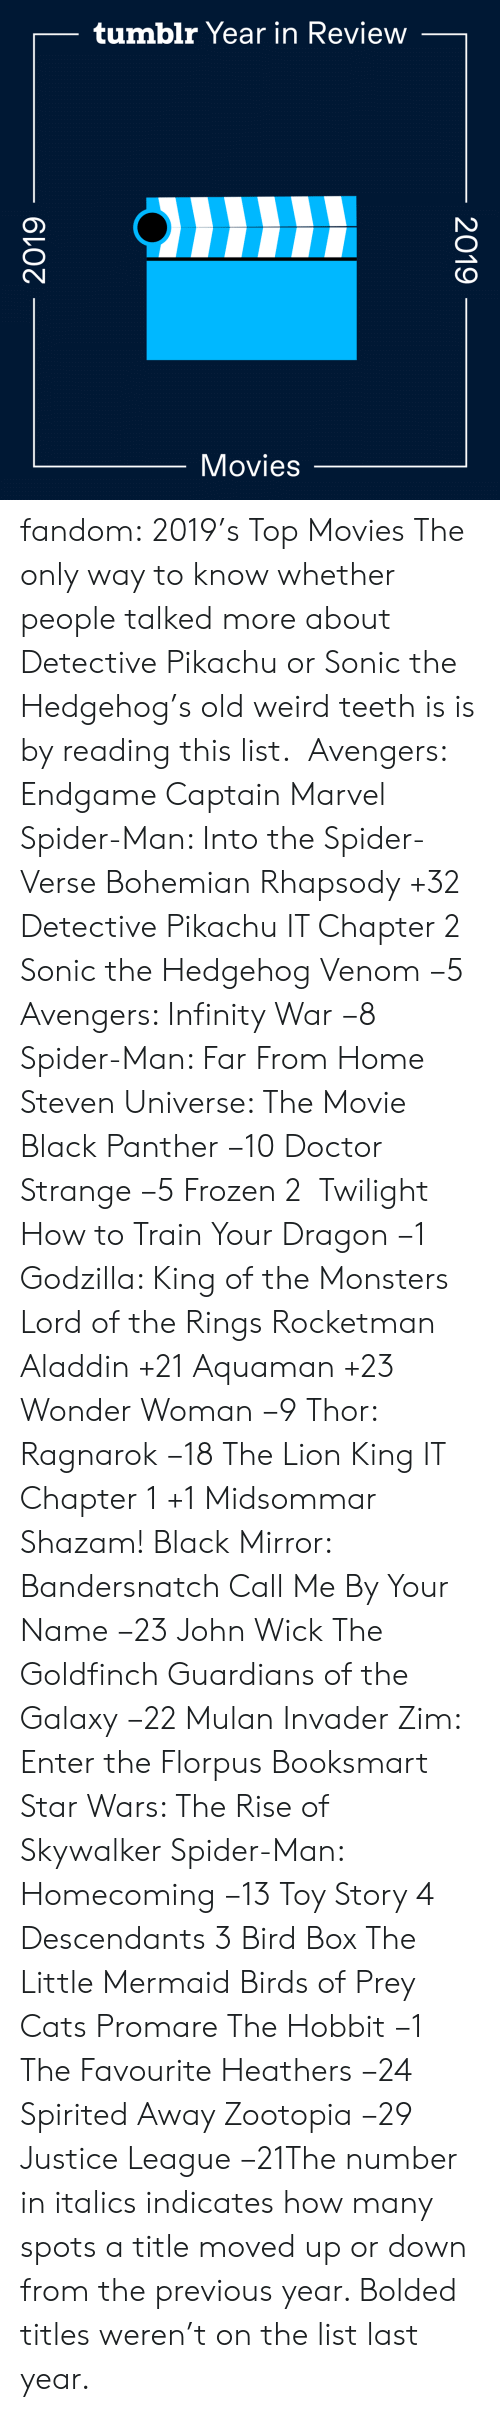 Aladdin, Cats, and Doctor: tumblr Year in Review  Movies  2019  2019 fandom:  2019's Top Movies  The only way to know whether people talked more about Detective Pikachu or Sonic the Hedgehog's old weird teeth is is by reading this list.   Avengers: Endgame  Captain Marvel  Spider-Man: Into the Spider-Verse  Bohemian Rhapsody +32  Detective Pikachu  IT Chapter 2  Sonic the Hedgehog  Venom −5  Avengers: Infinity War −8  Spider-Man: Far From Home  Steven Universe: The Movie  Black Panther −10  Doctor Strange −5  Frozen 2   Twilight  How to Train Your Dragon −1  Godzilla: King of the Monsters  Lord of the Rings  Rocketman  Aladdin +21  Aquaman +23  Wonder Woman −9  Thor: Ragnarok −18  The Lion King  IT Chapter 1 +1  Midsommar  Shazam!  Black Mirror: Bandersnatch  Call Me By Your Name −23  John Wick  The Goldfinch  Guardians of the Galaxy −22  Mulan  Invader Zim: Enter the Florpus  Booksmart  Star Wars: The Rise of Skywalker  Spider-Man: Homecoming −13  Toy Story 4  Descendants 3  Bird Box  The Little Mermaid  Birds of Prey  Cats  Promare  The Hobbit −1  The Favourite  Heathers −24  Spirited Away  Zootopia −29 Justice League −21The number in italics indicates how many spots a title moved up or down from the previous year. Bolded titles weren't on the list last year.